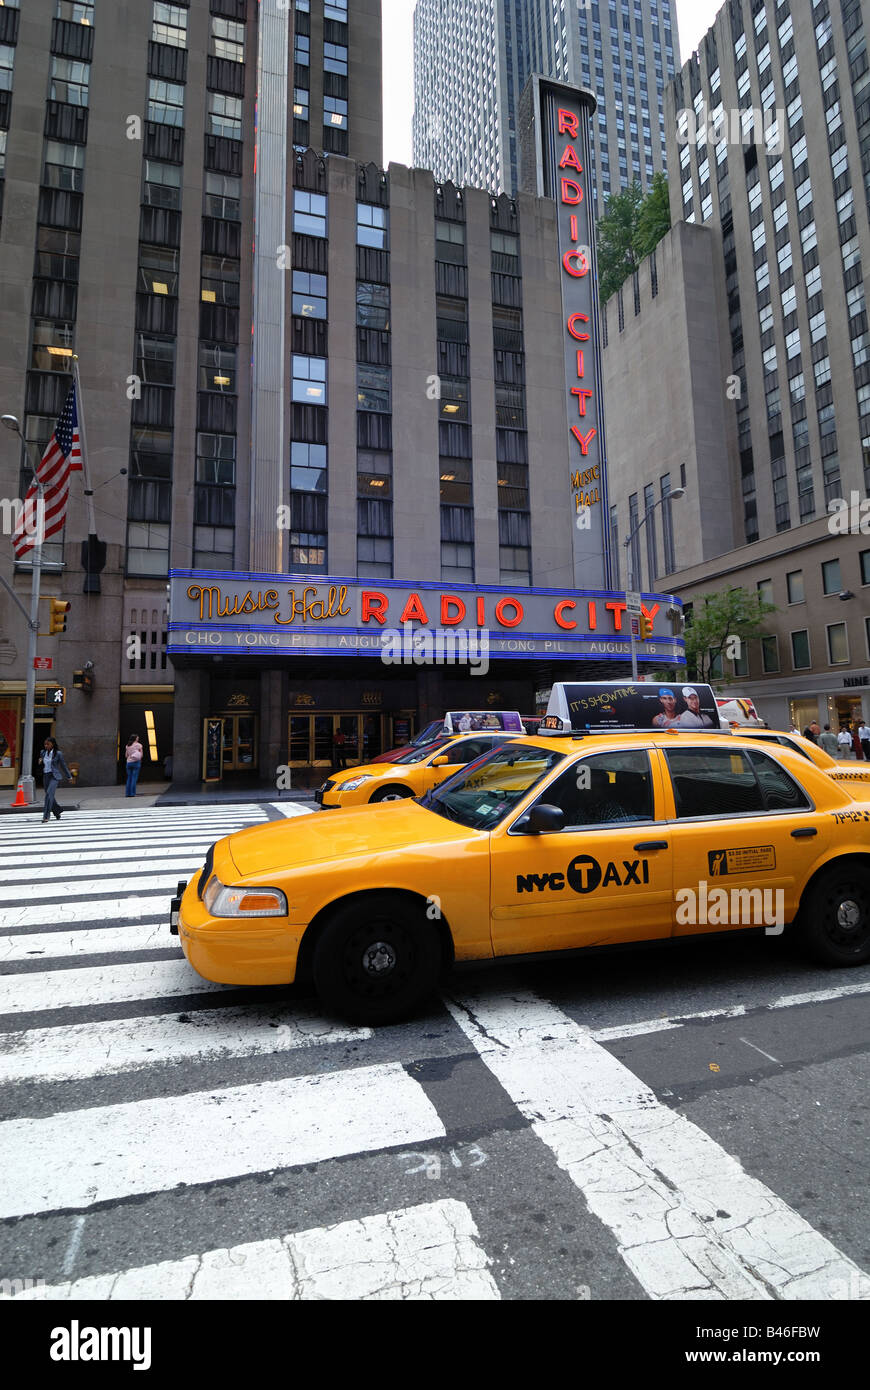 Yellow cabs pass over a crosswalk in front of Radio City Music Hall in New York City. - Stock Image